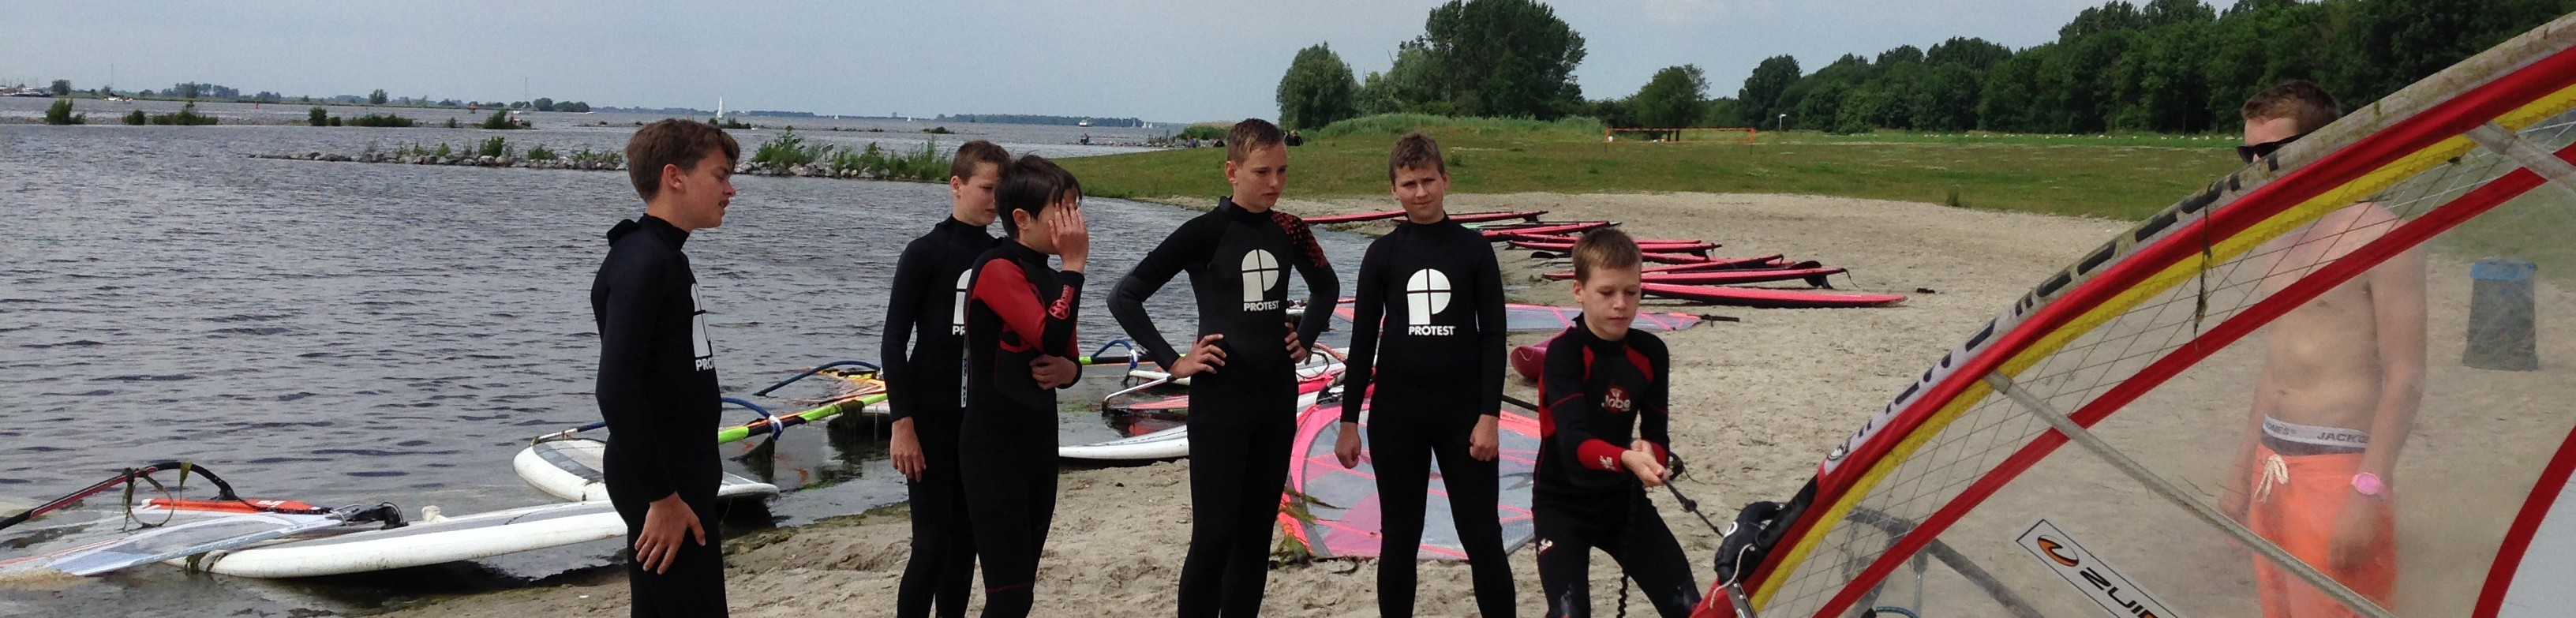 Windsurfschool | Windsurflessen | Eemhof Watersport